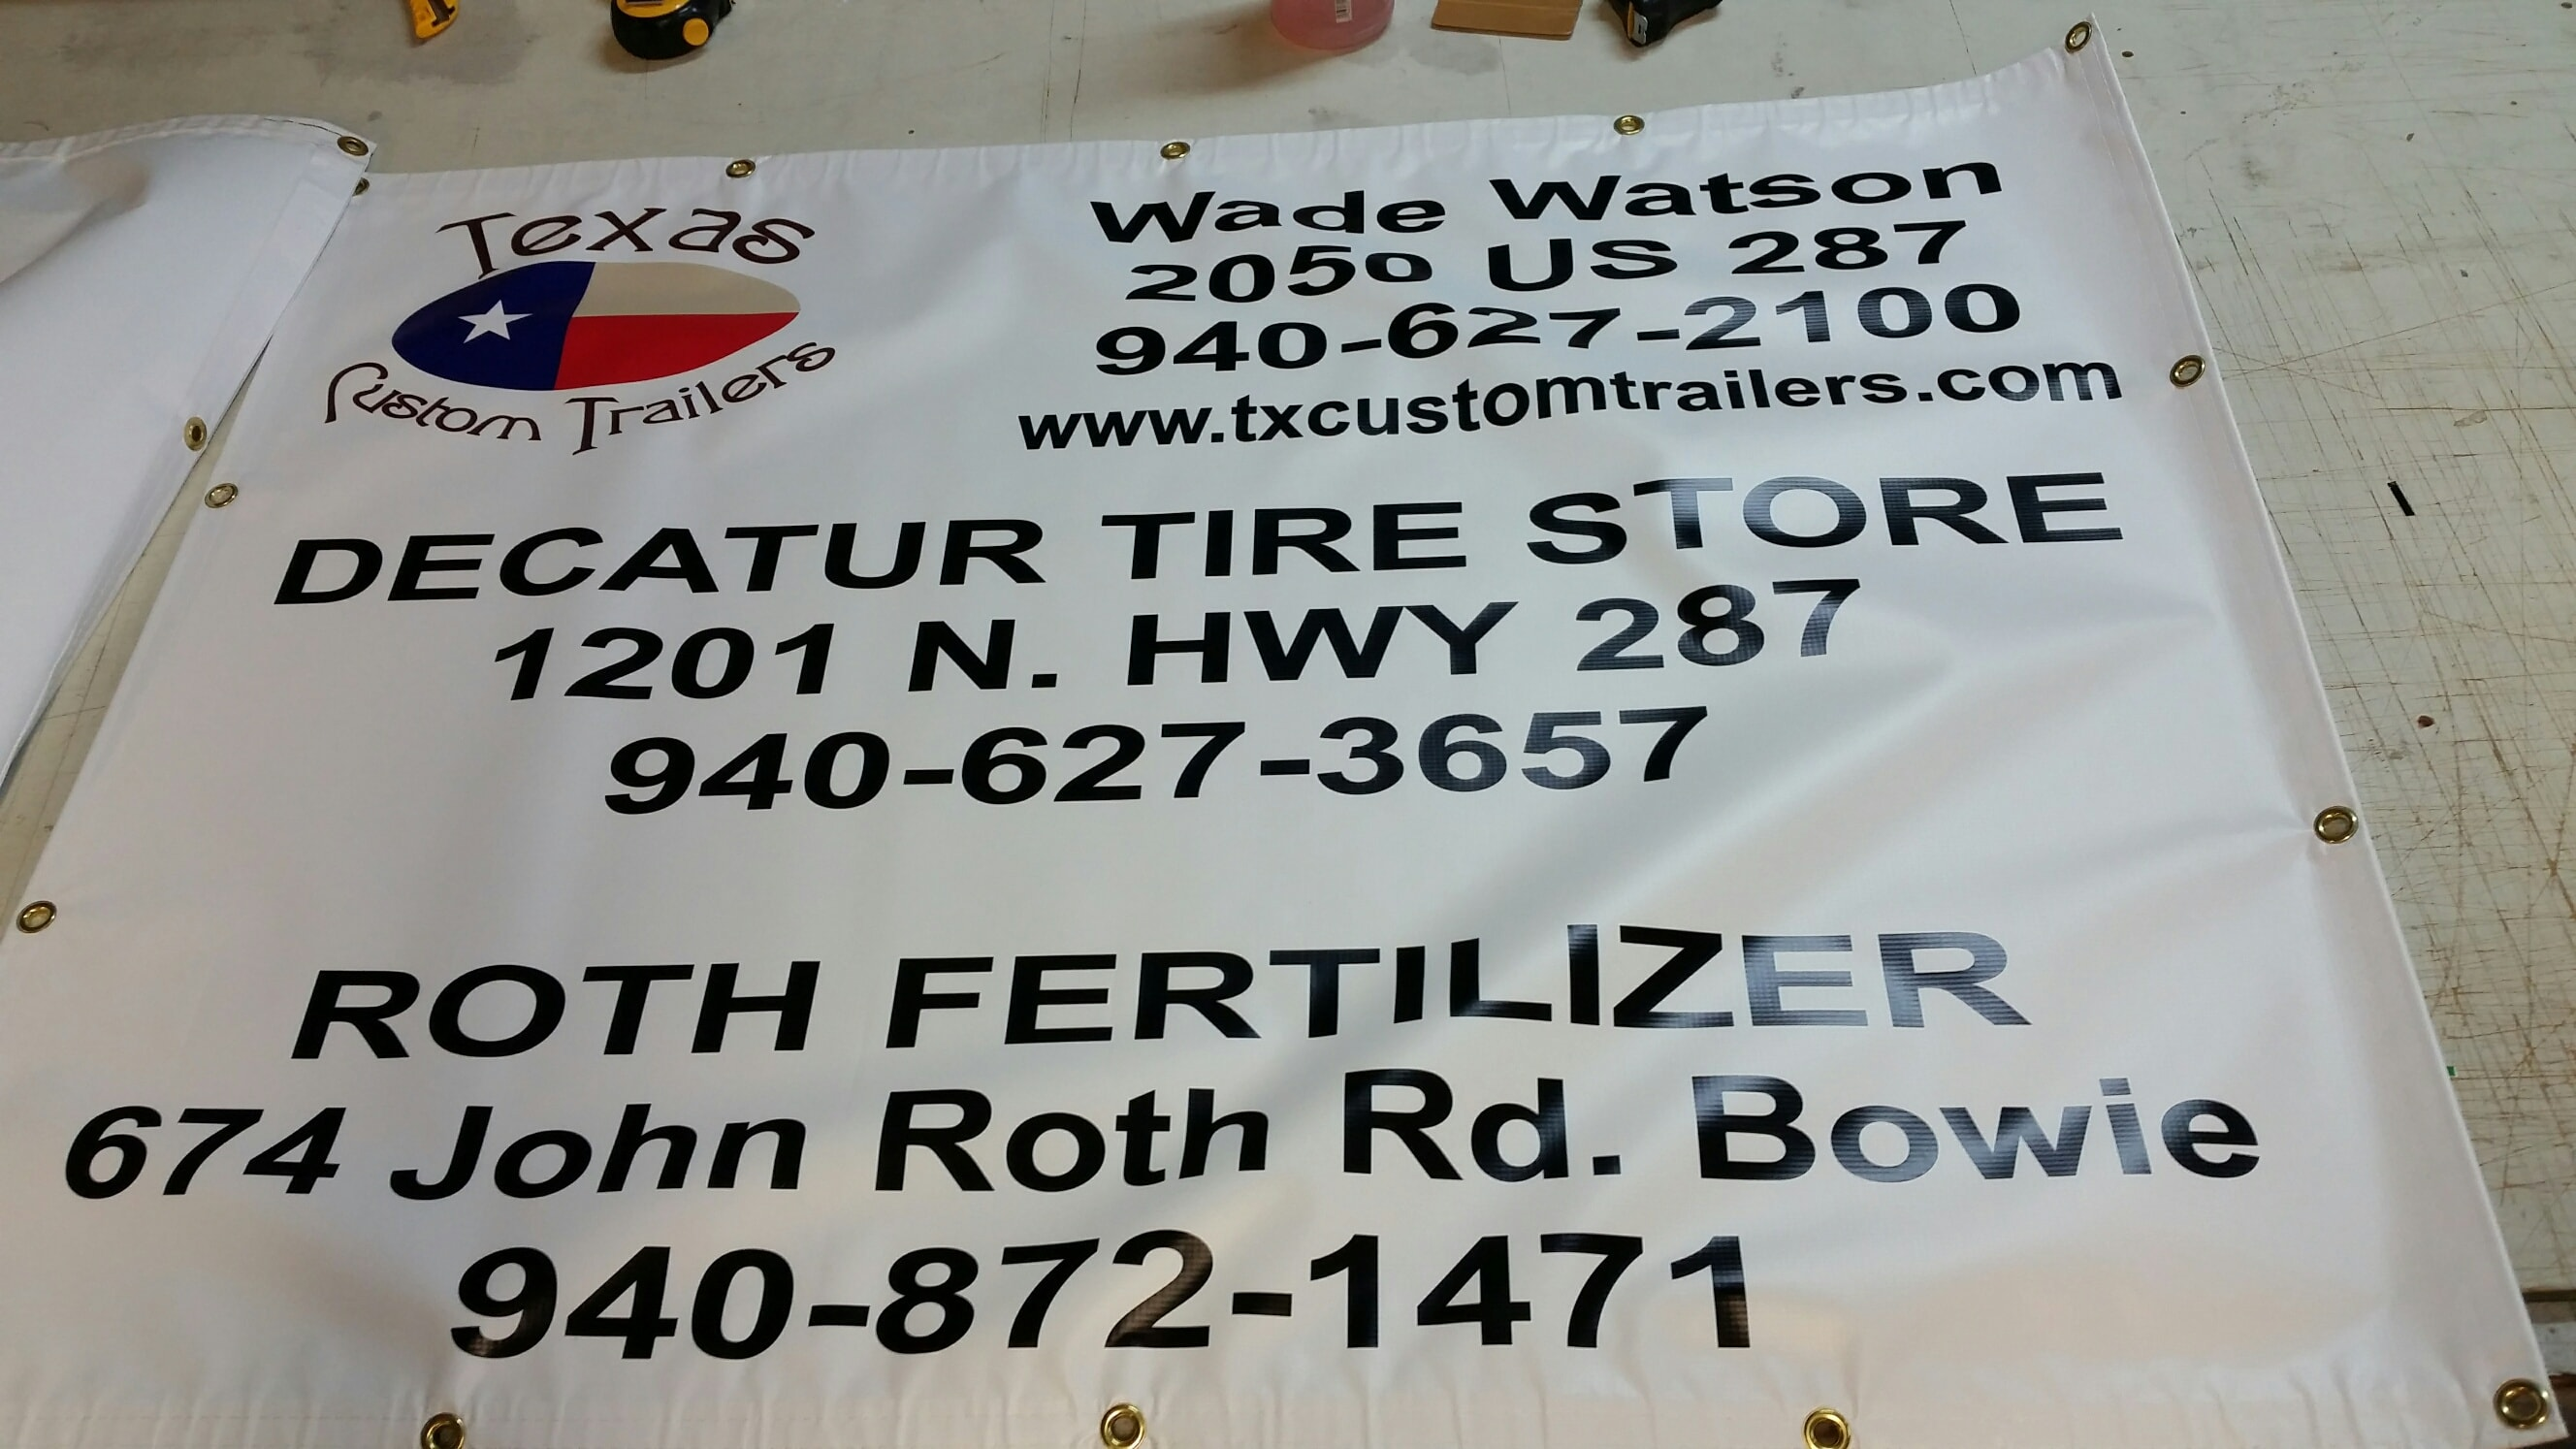 Texas Custom Trailers A Plus Signs Embroidery